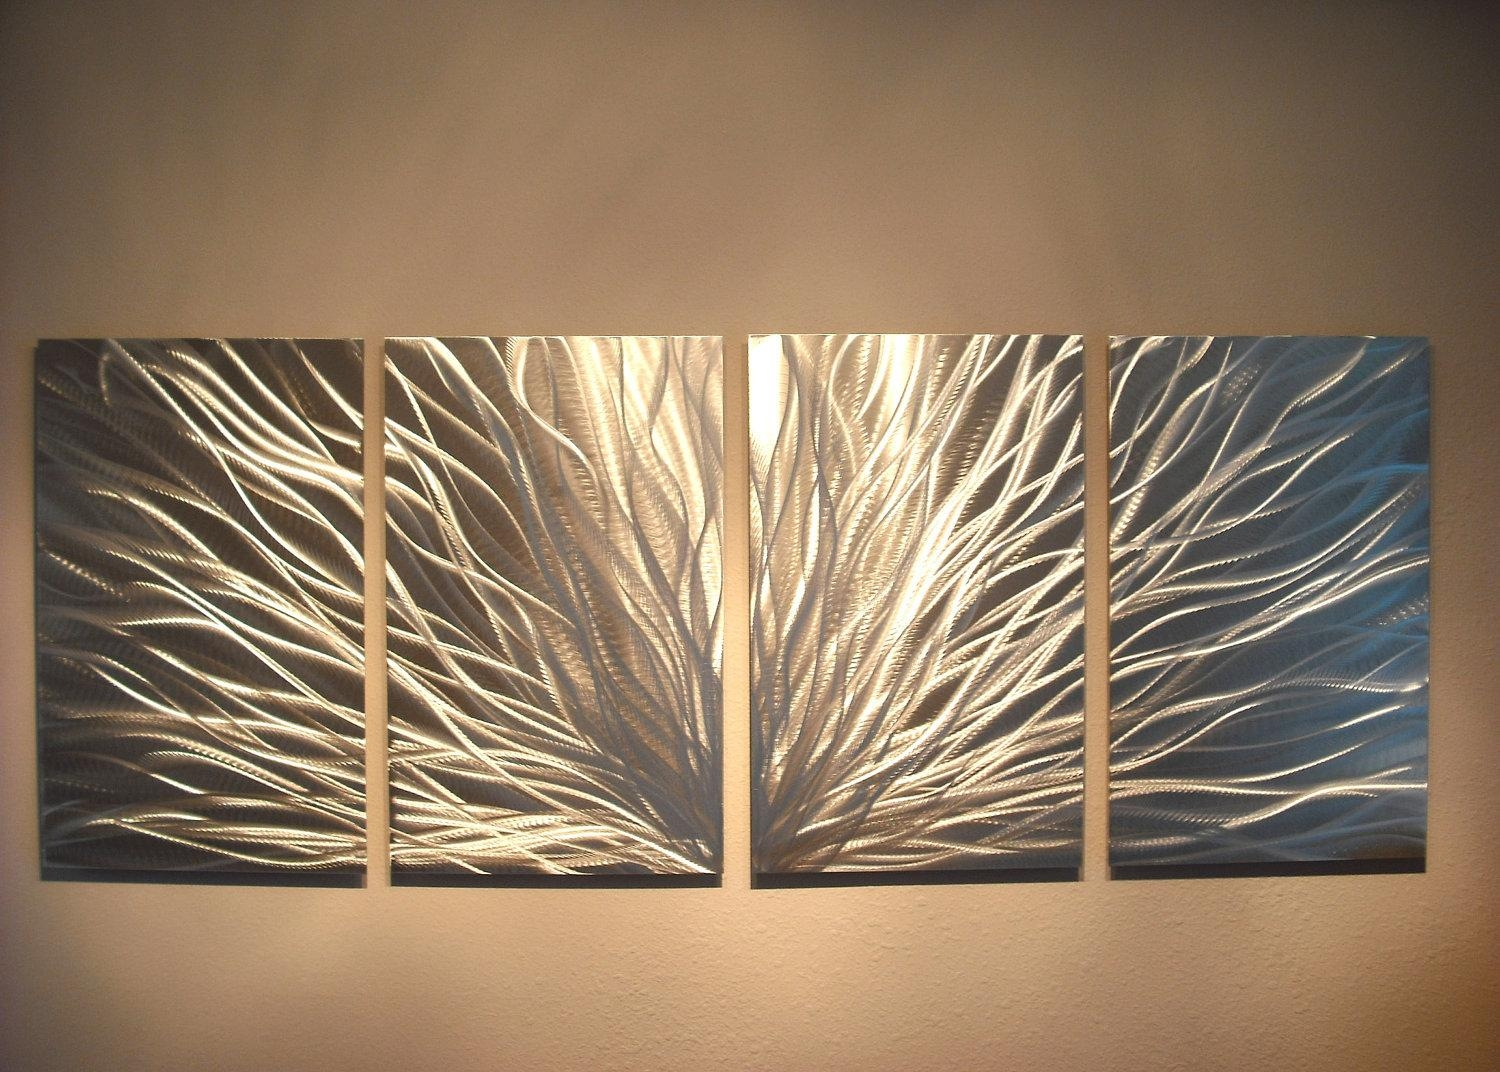 Radiance – Abstract Metal Wall Art Contemporary Modern Decor Throughout Diy Metal Wall Art (Image 12 of 20)